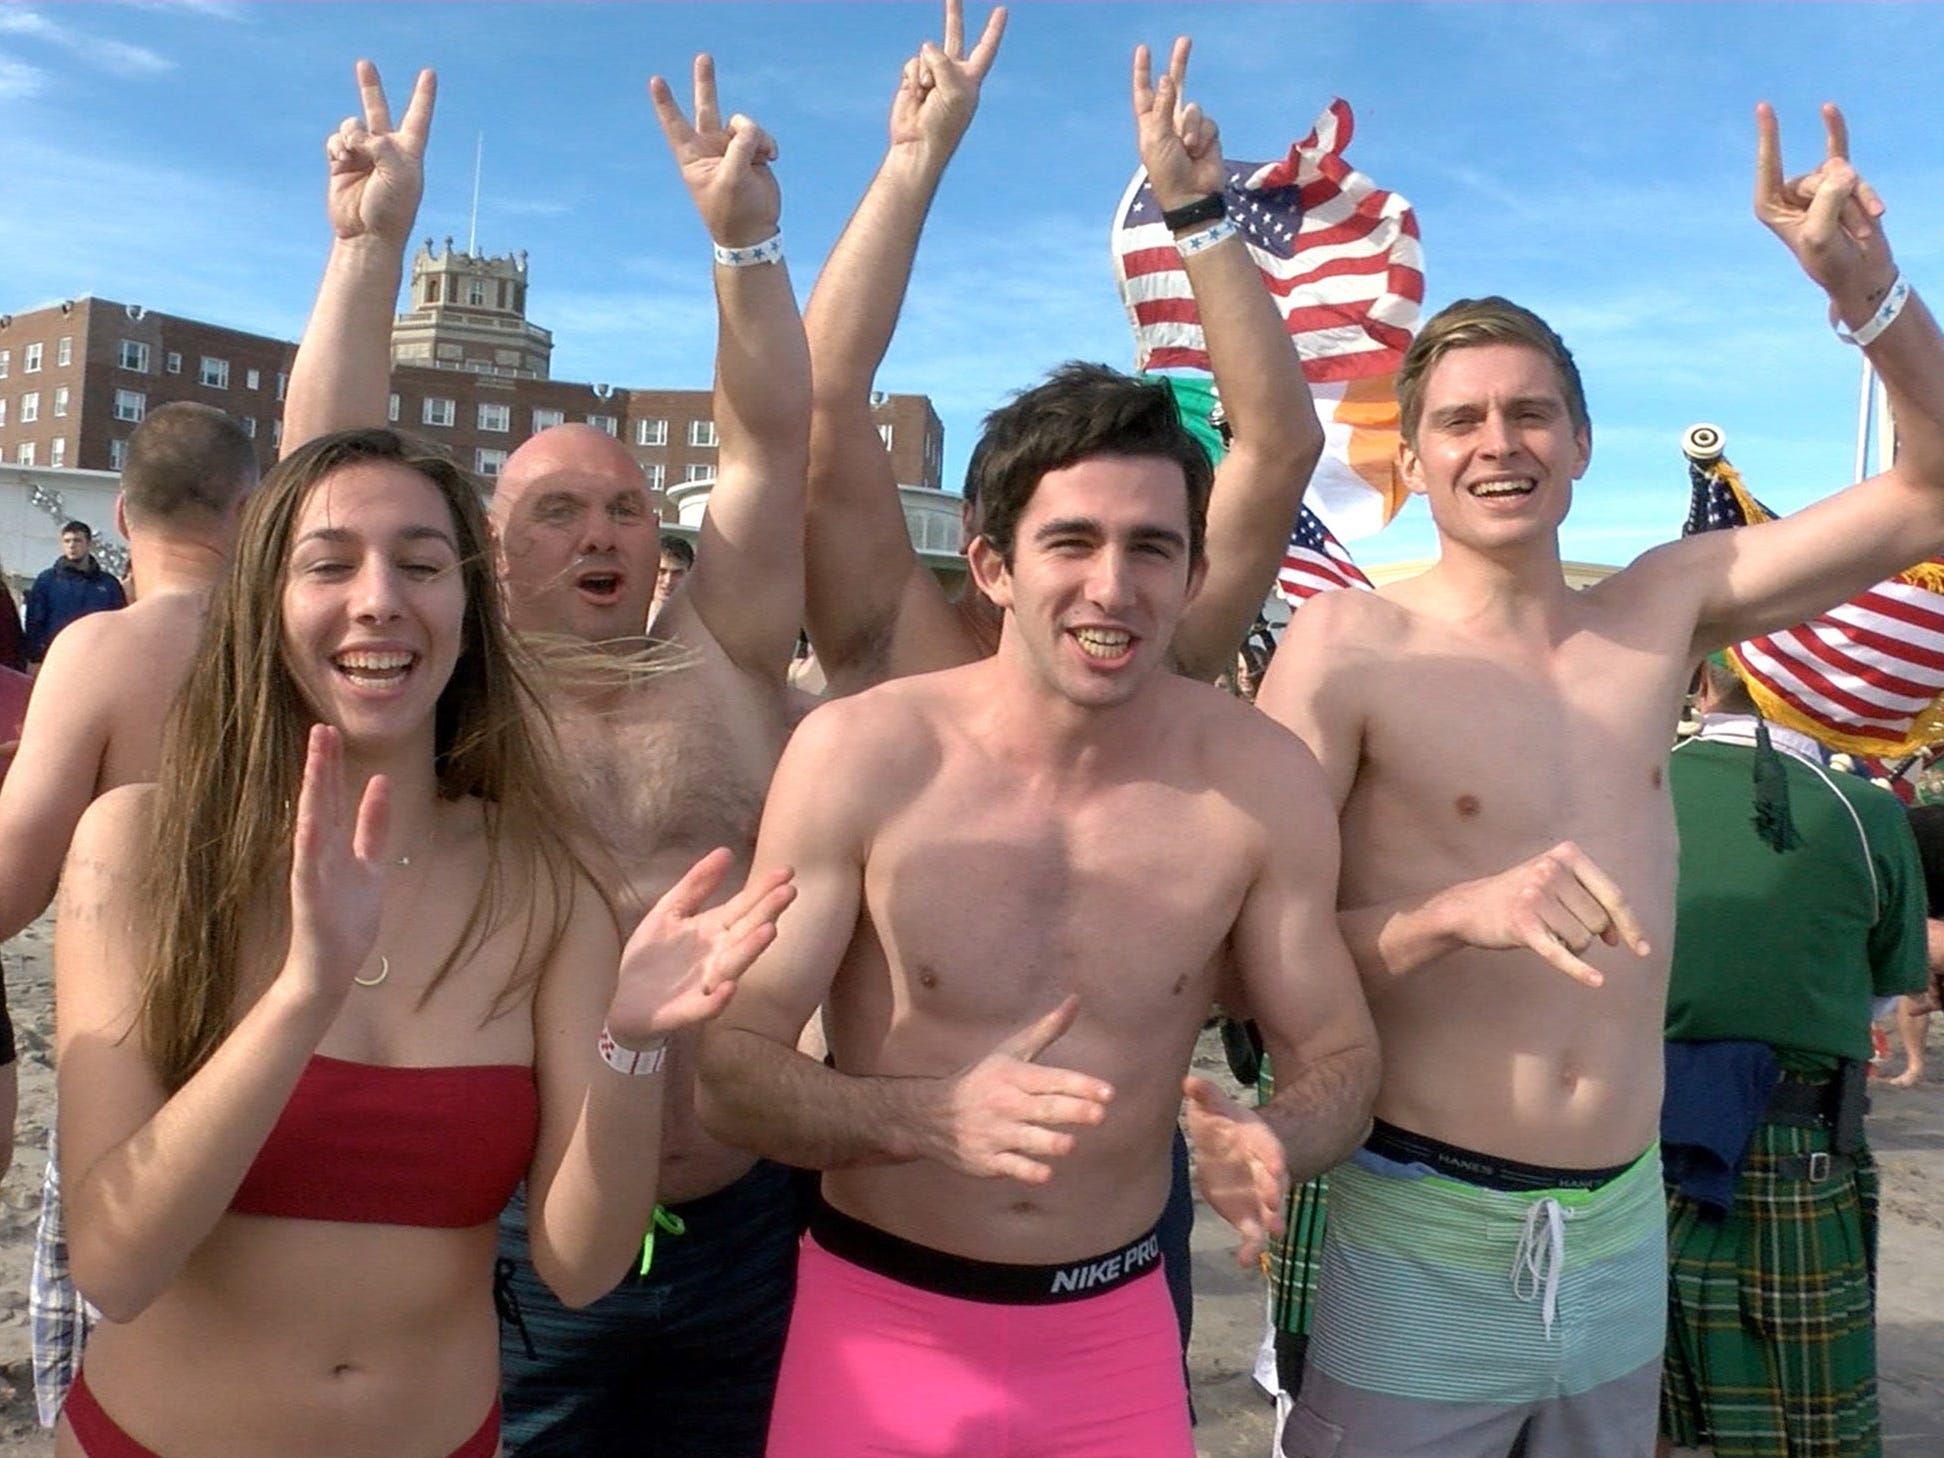 People get excited for their New Years Day dip in the ocean off Asbury Park during the Sons of Ireland Polar Plunge Tuesday, January 1, 2019.